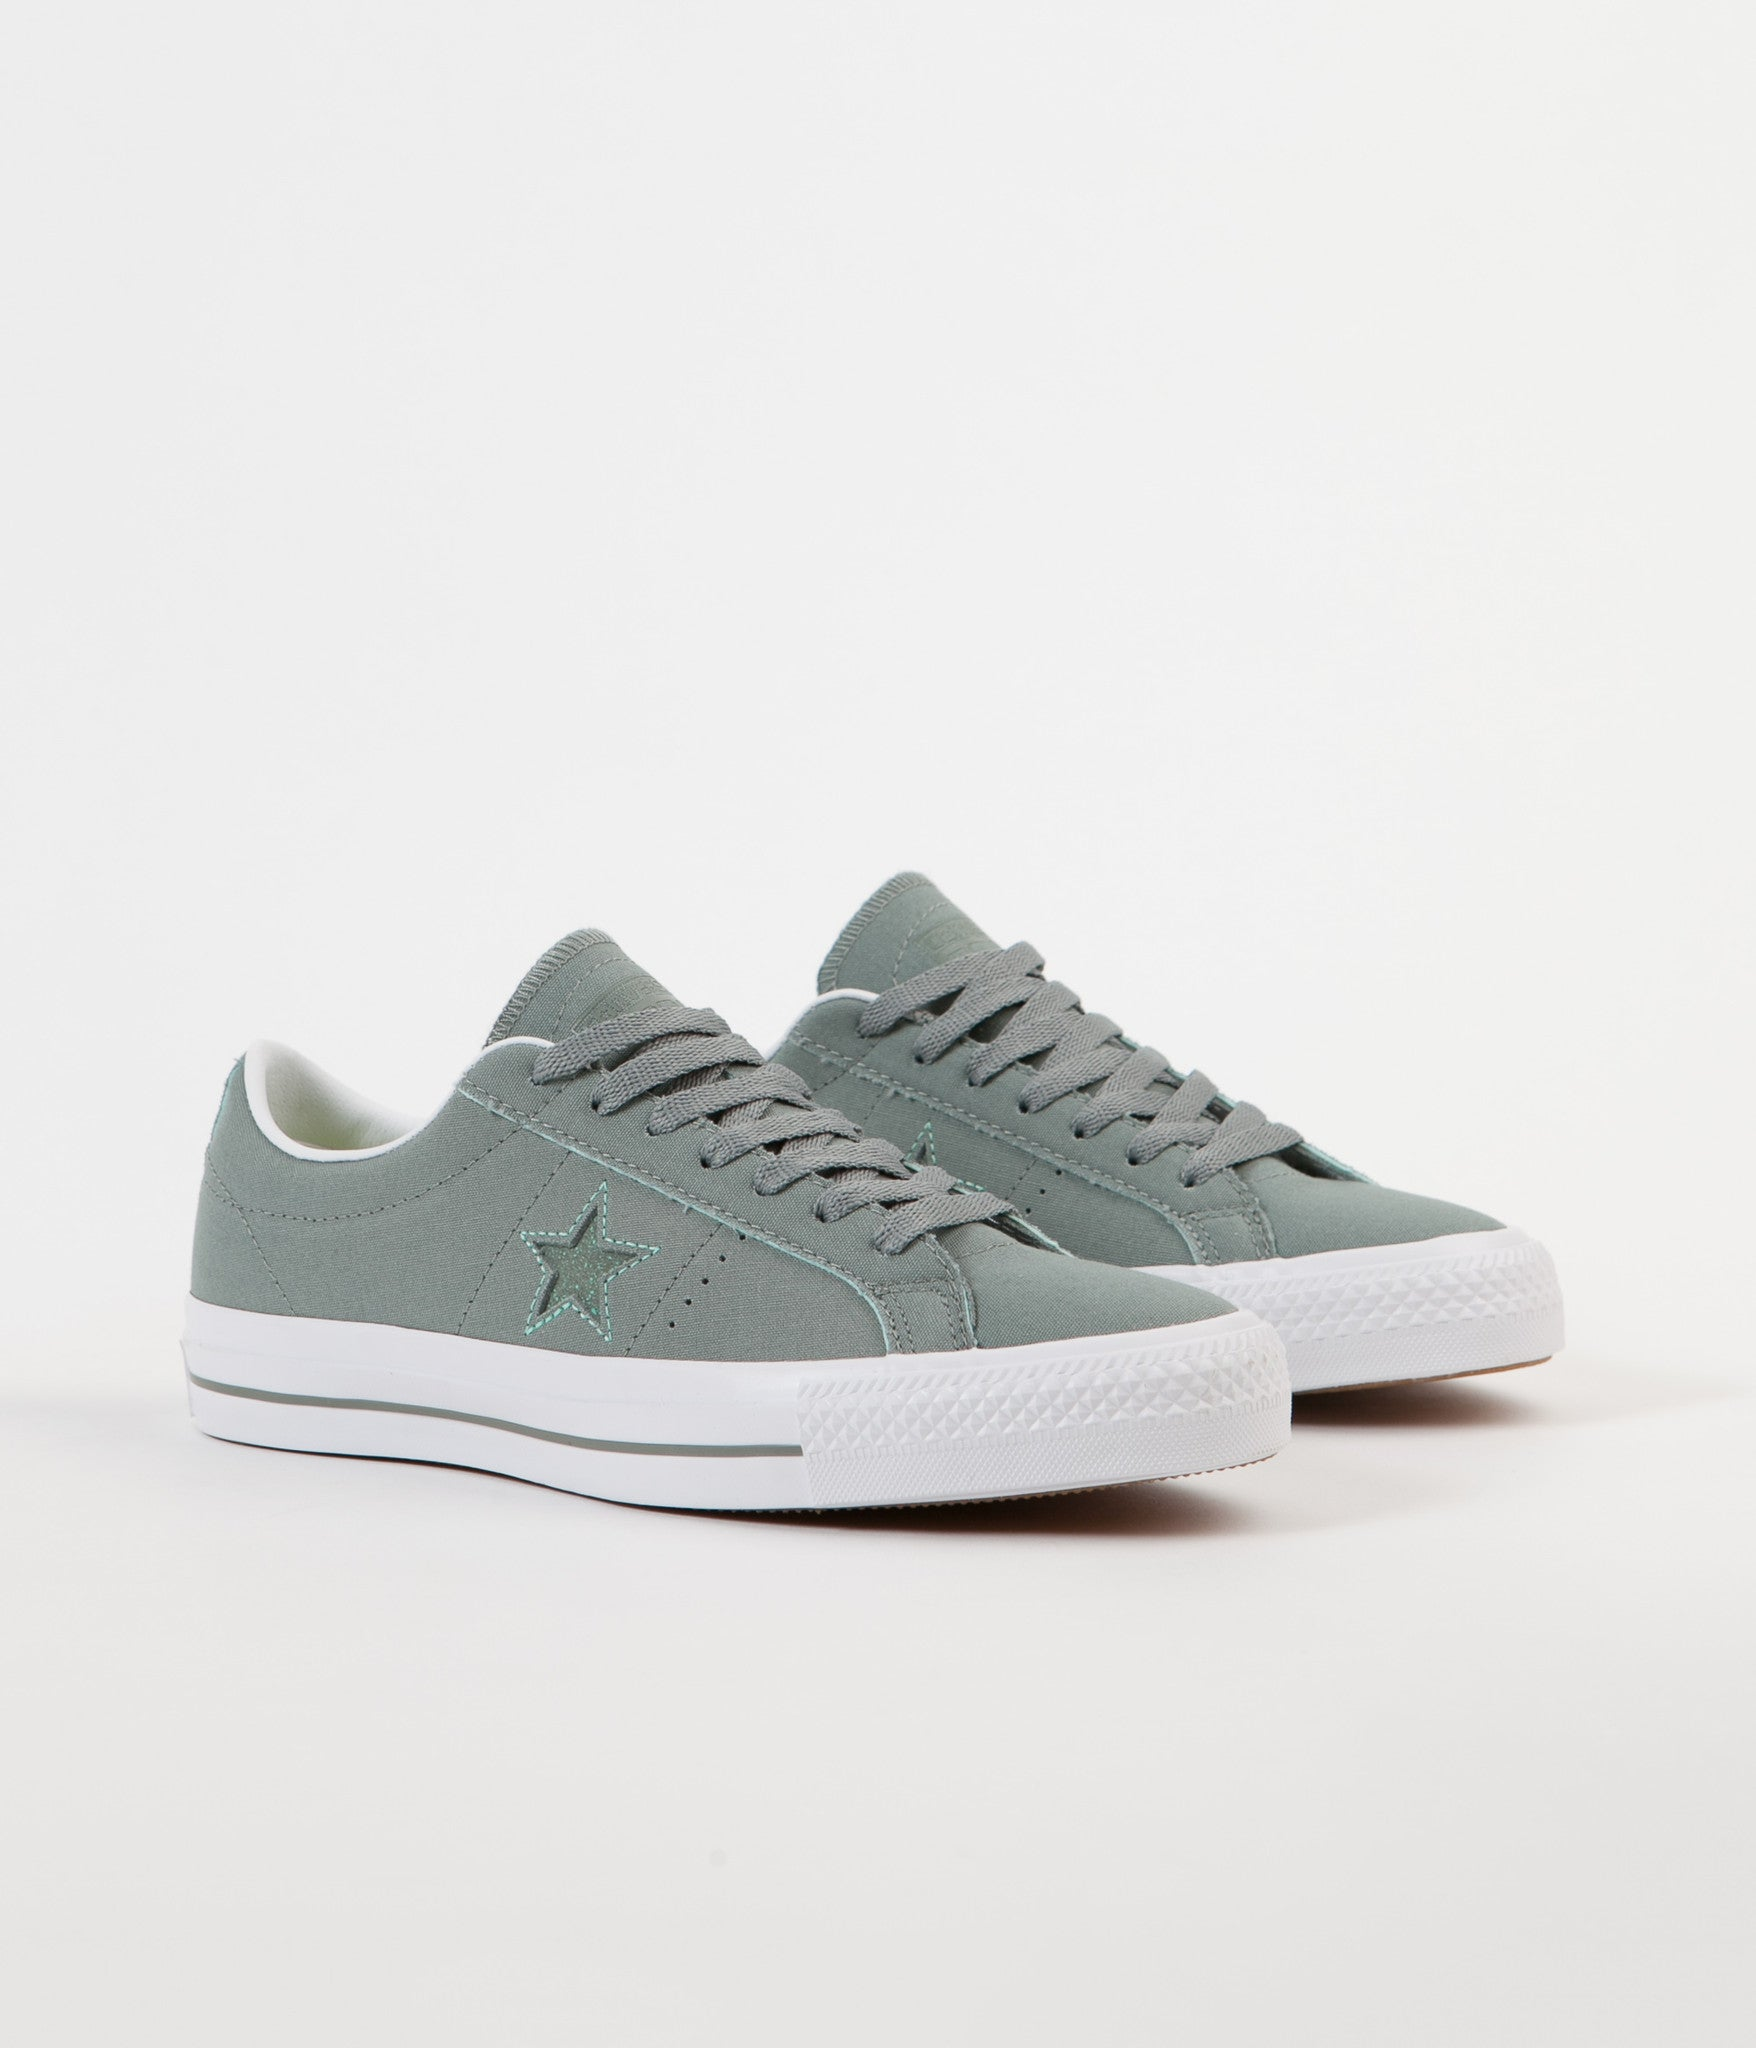 Converse One Star Pro Ox Shoes - Camo Green / Green Glow